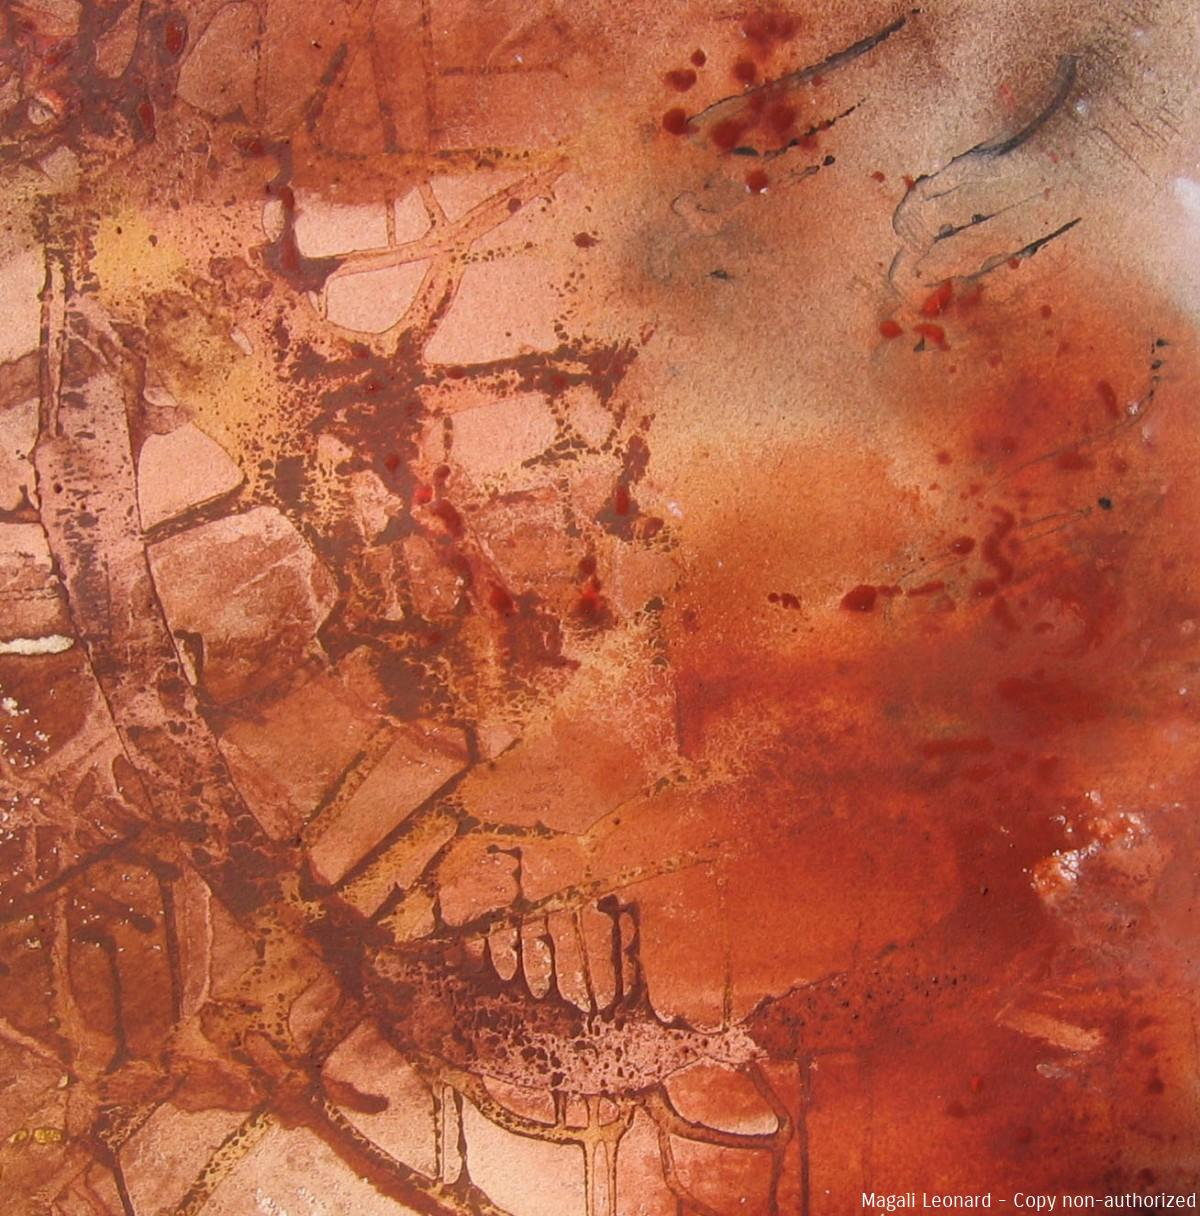 Terre 6, 2008, Mixed media on canvas, 15,74 X 15,74 inches copie